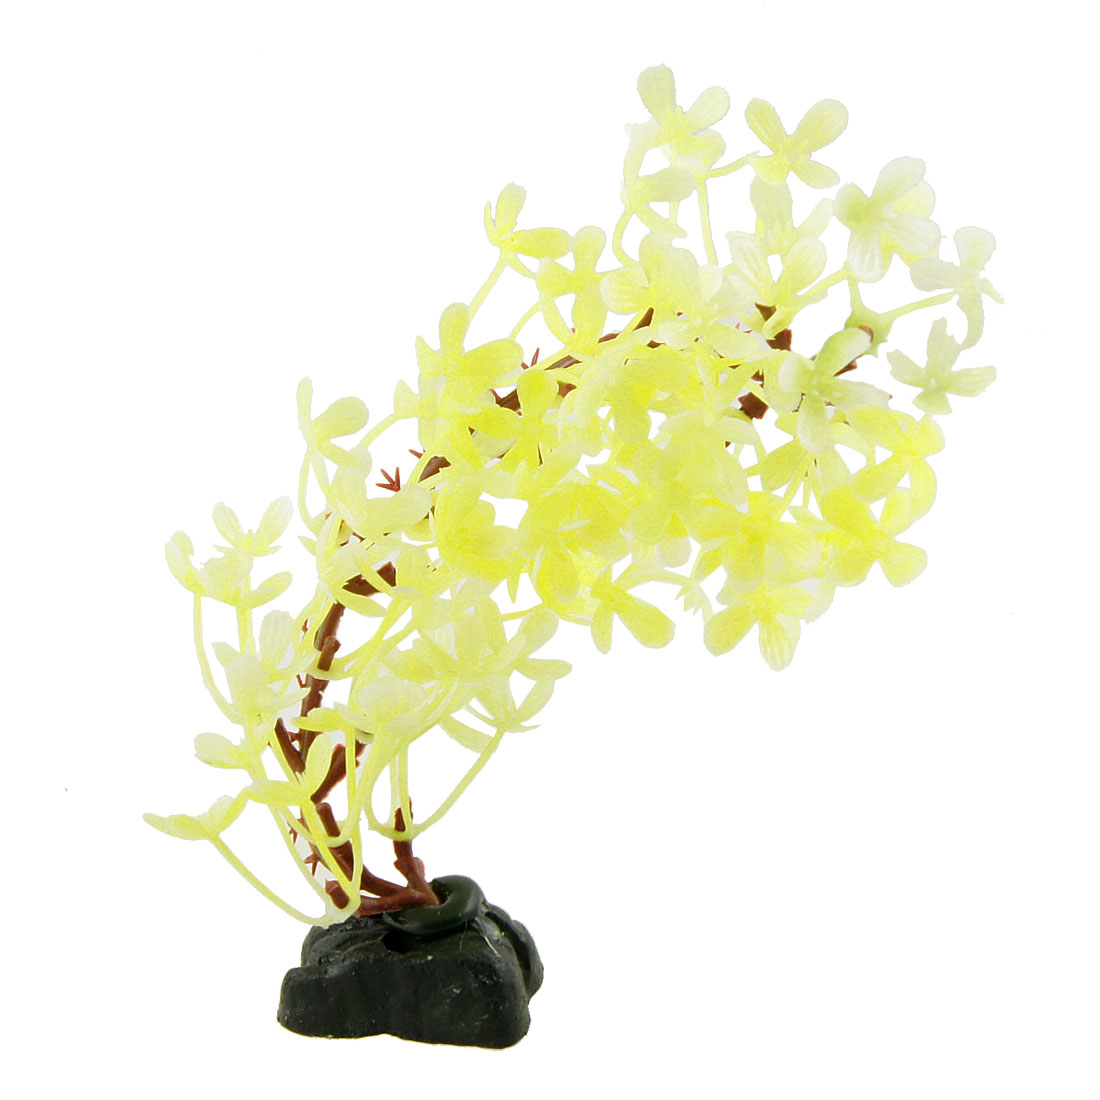 "Aquarium Artificial Twisted Yellow Flower Plants Ornament 6.3"" High"